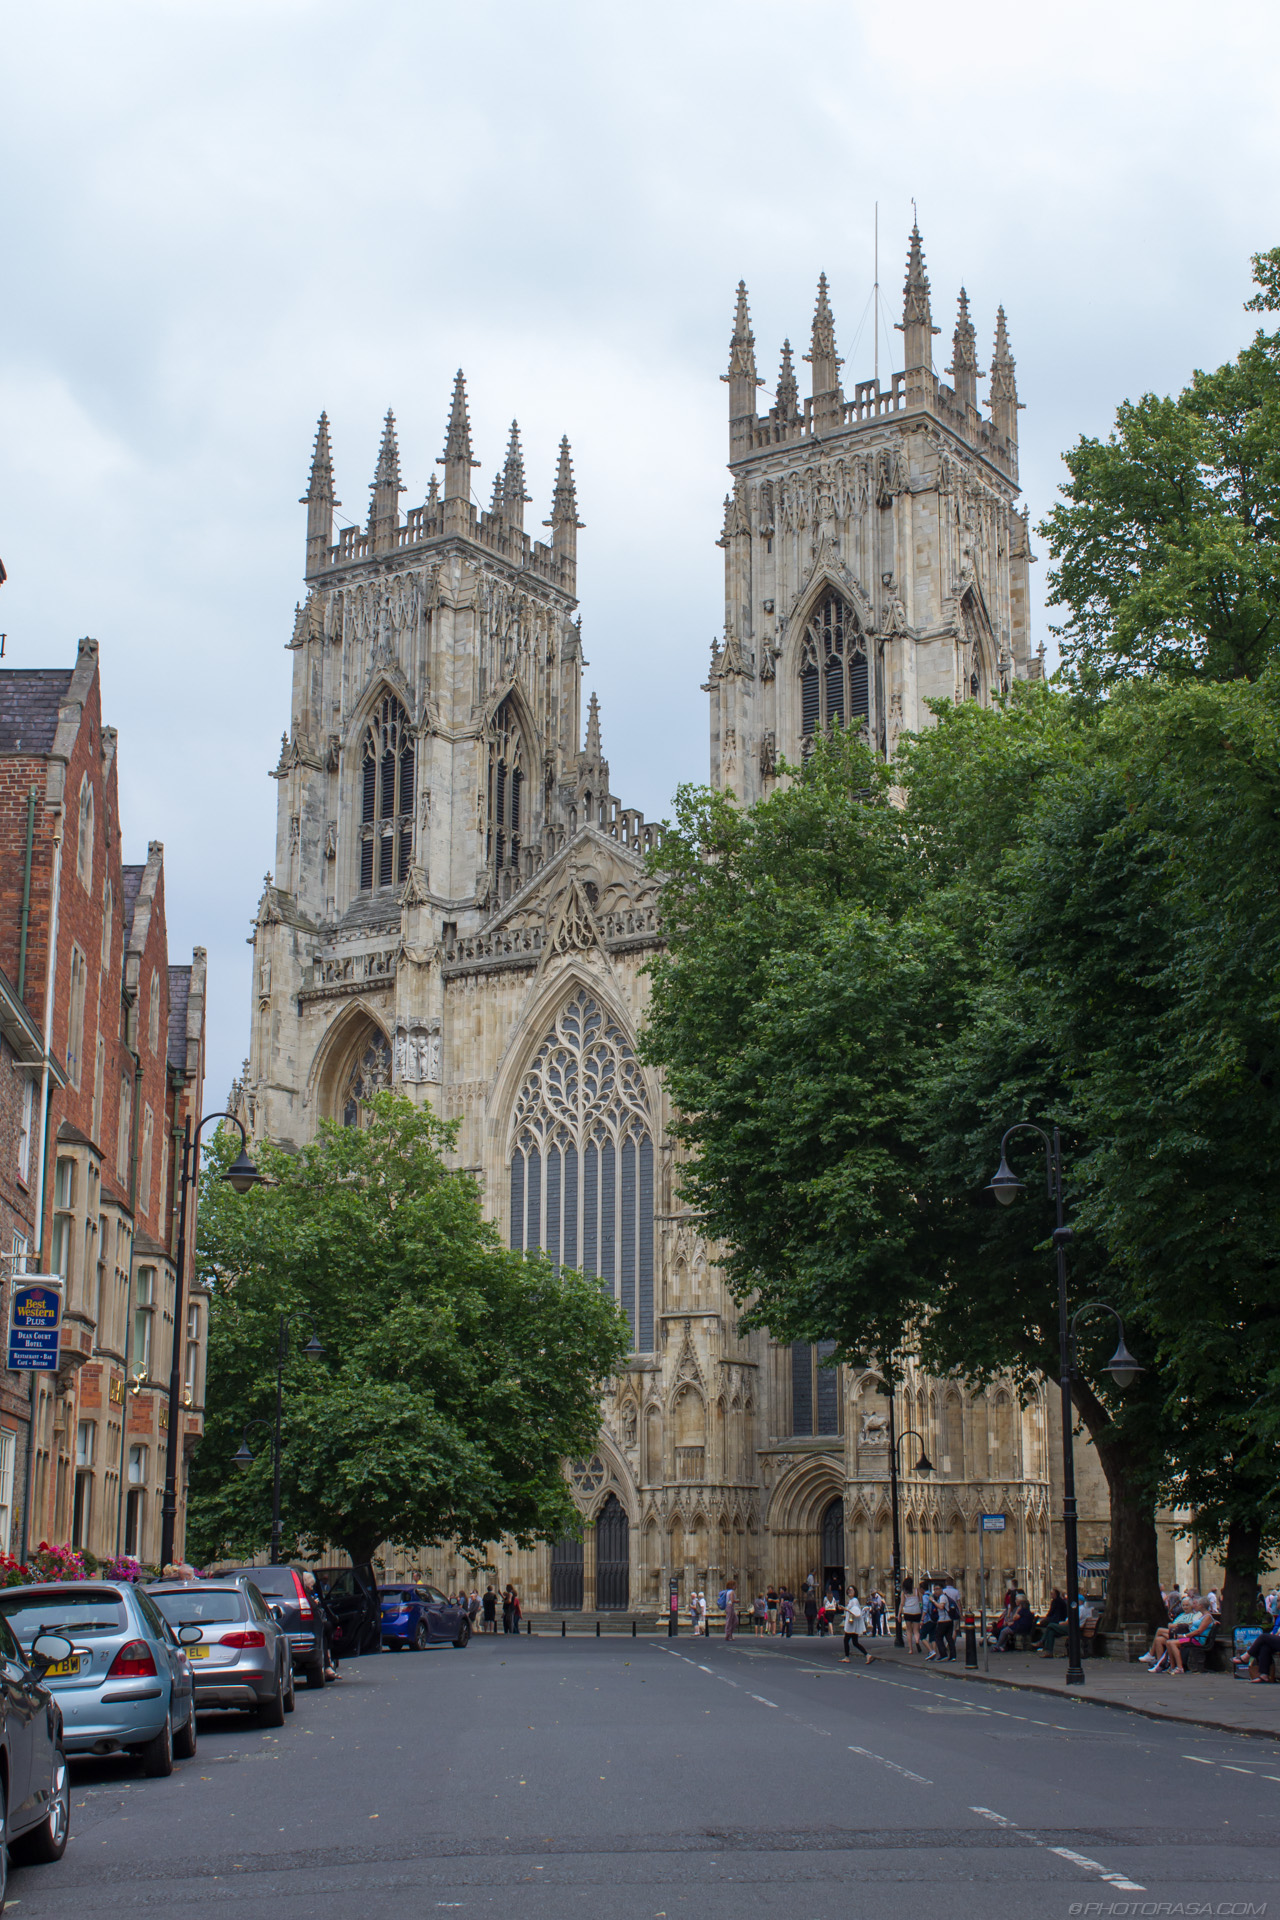 https://photorasa.com/yorkminster-cathedral/york-minster-cathedral-from-precentors-court-road/